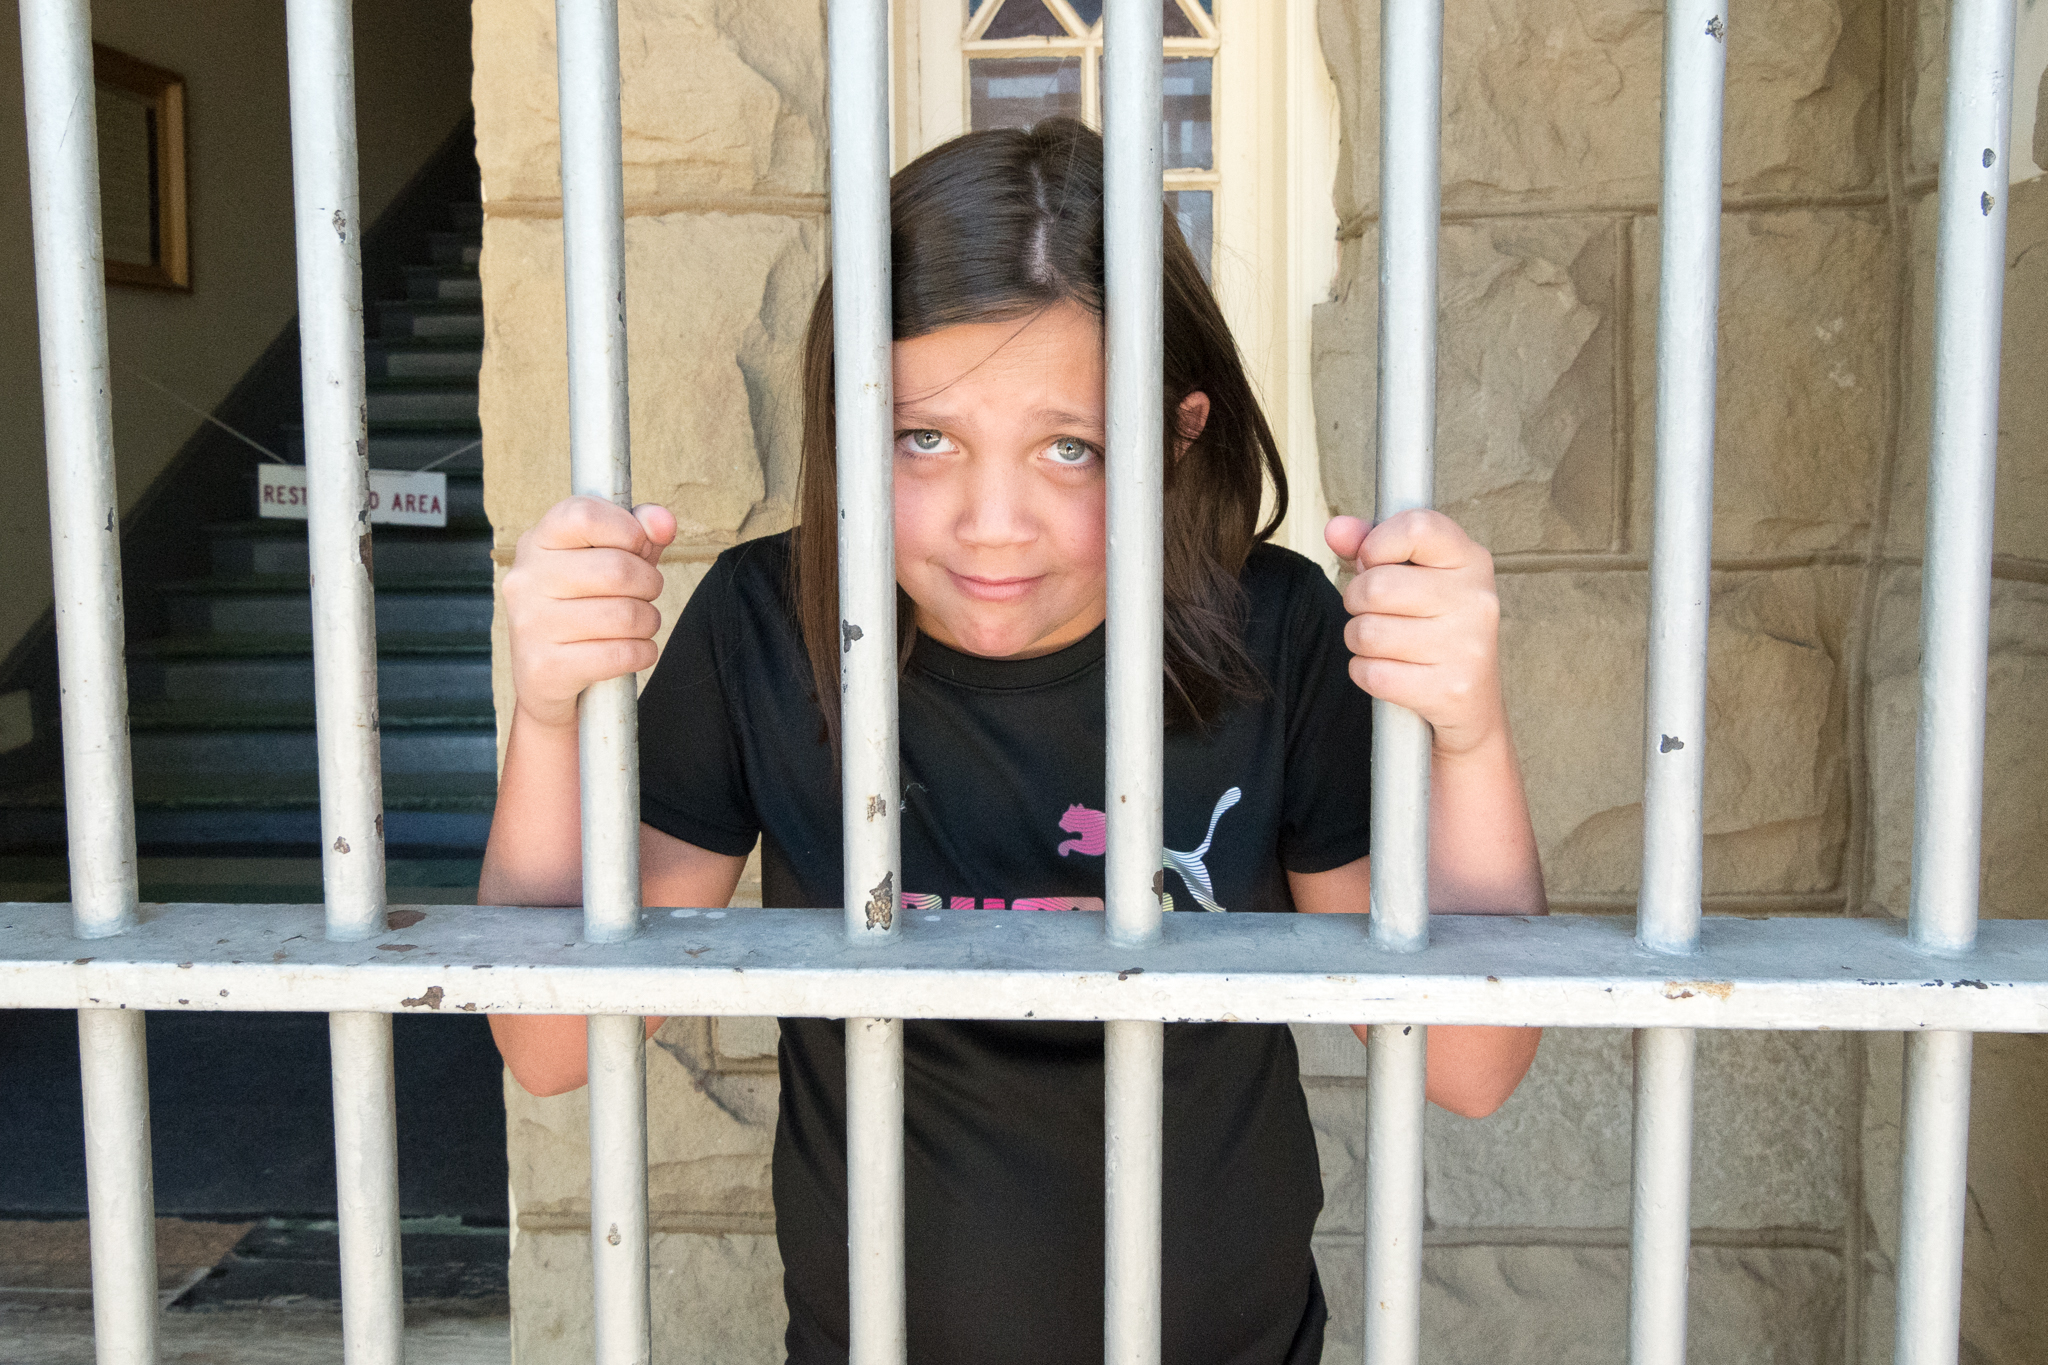 Lily behind bars